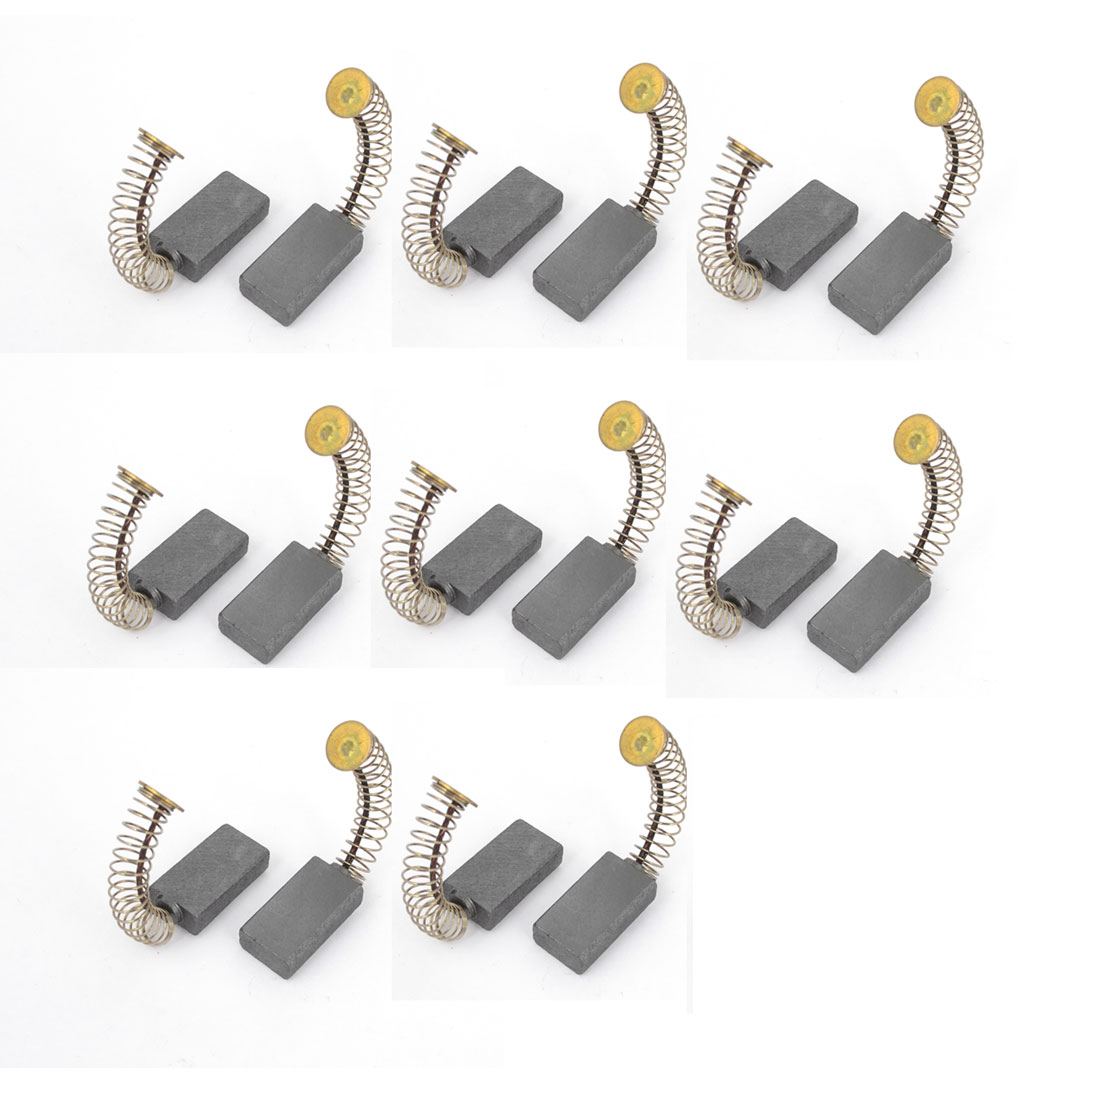 14pcs 18mm x 10mm x 5mm Motor Carbon Brushes for Electric Power Tool